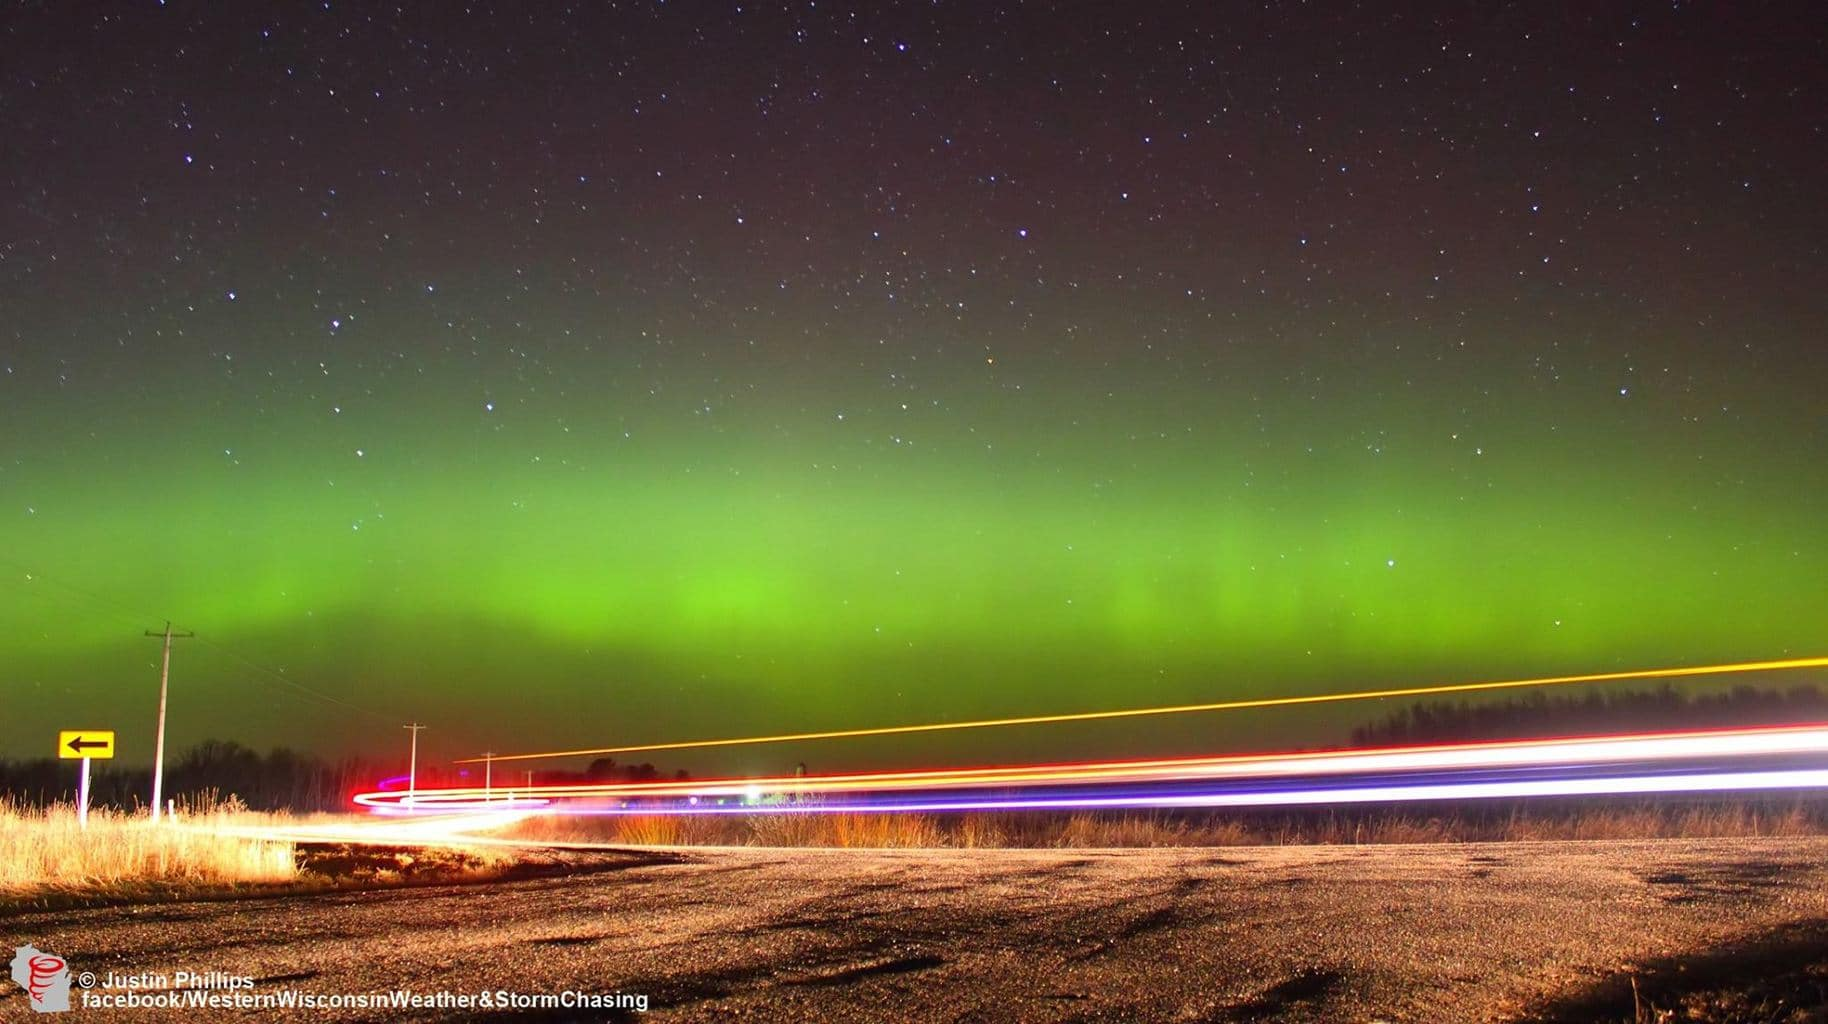 Northern lights and a passing car last night in New Auburn, Wisconsin.